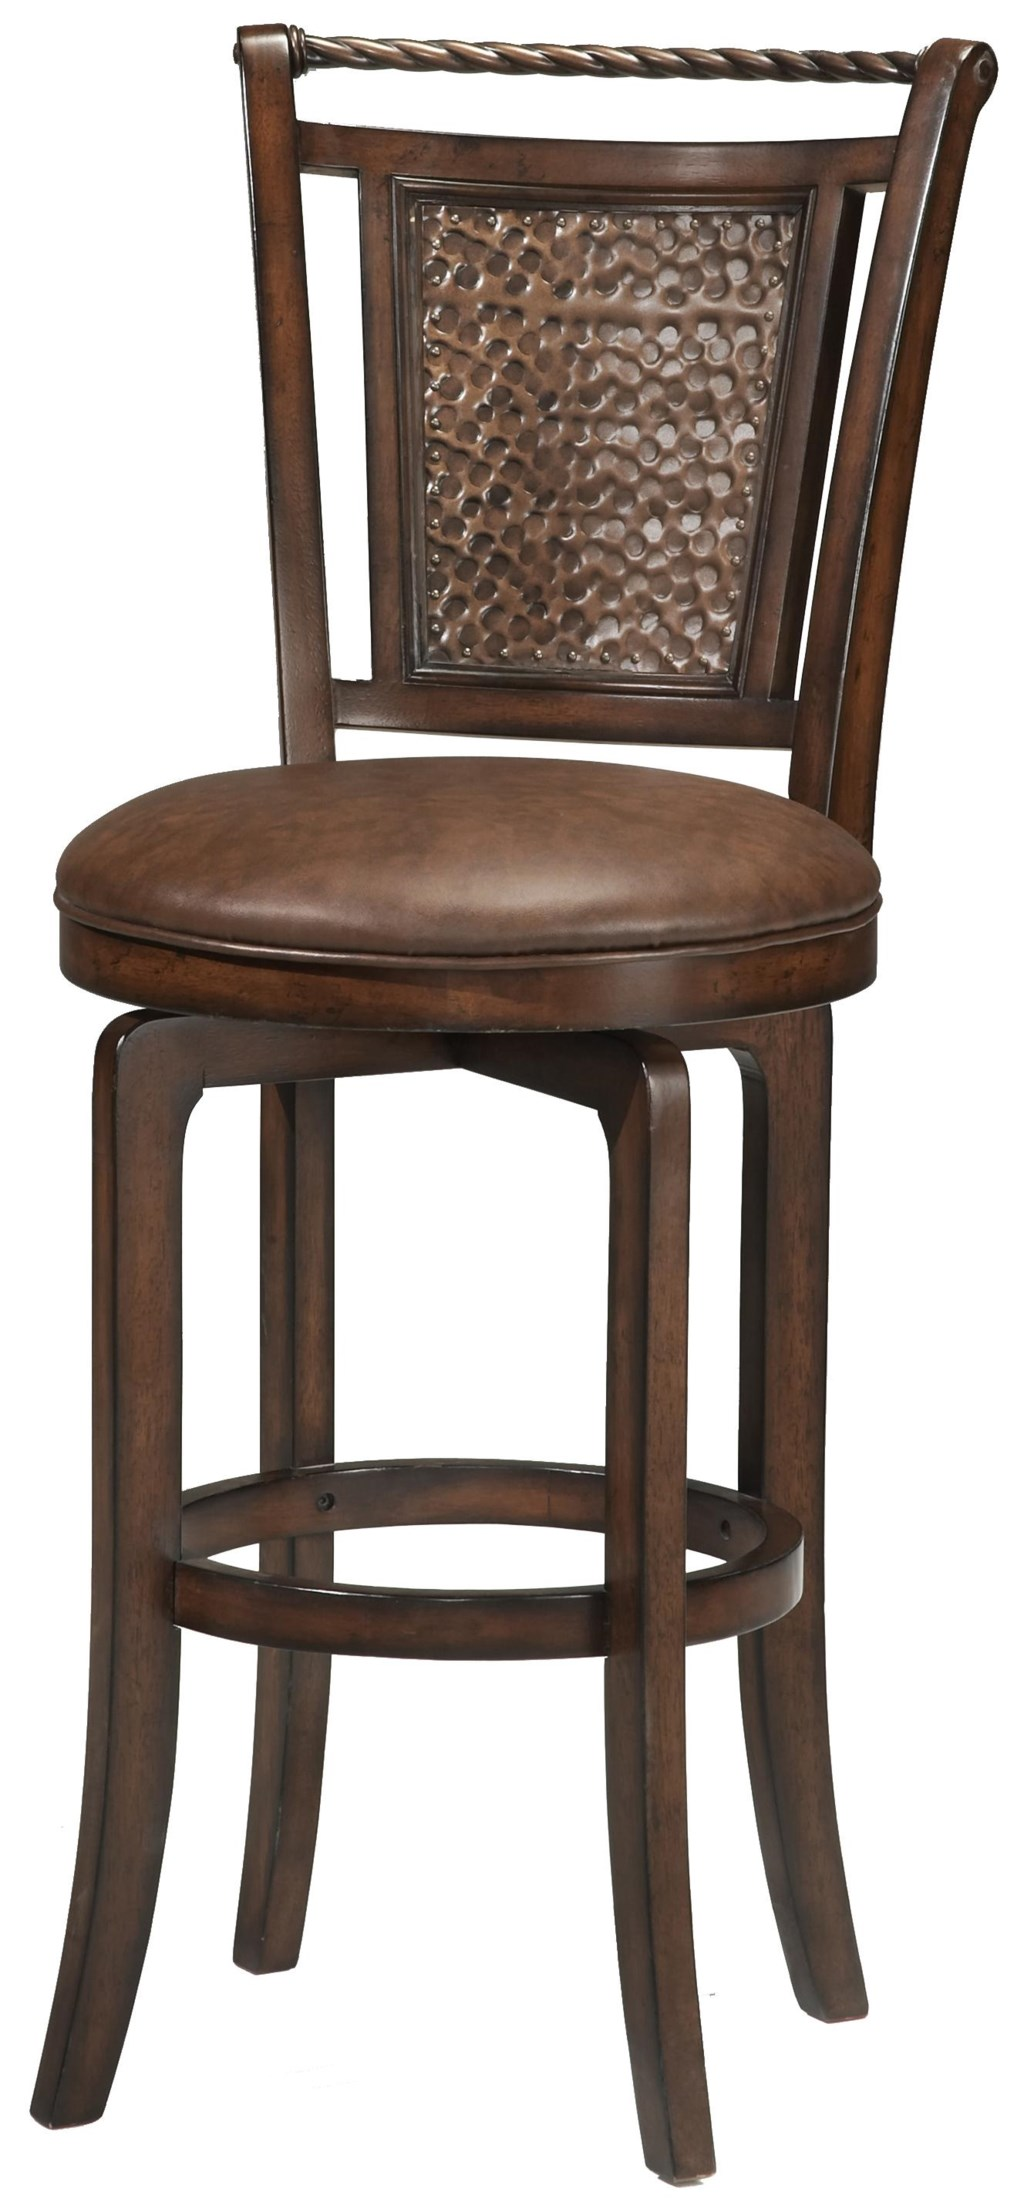 Morris Home Wood Stools Counter Height Norwood Swivel Stool